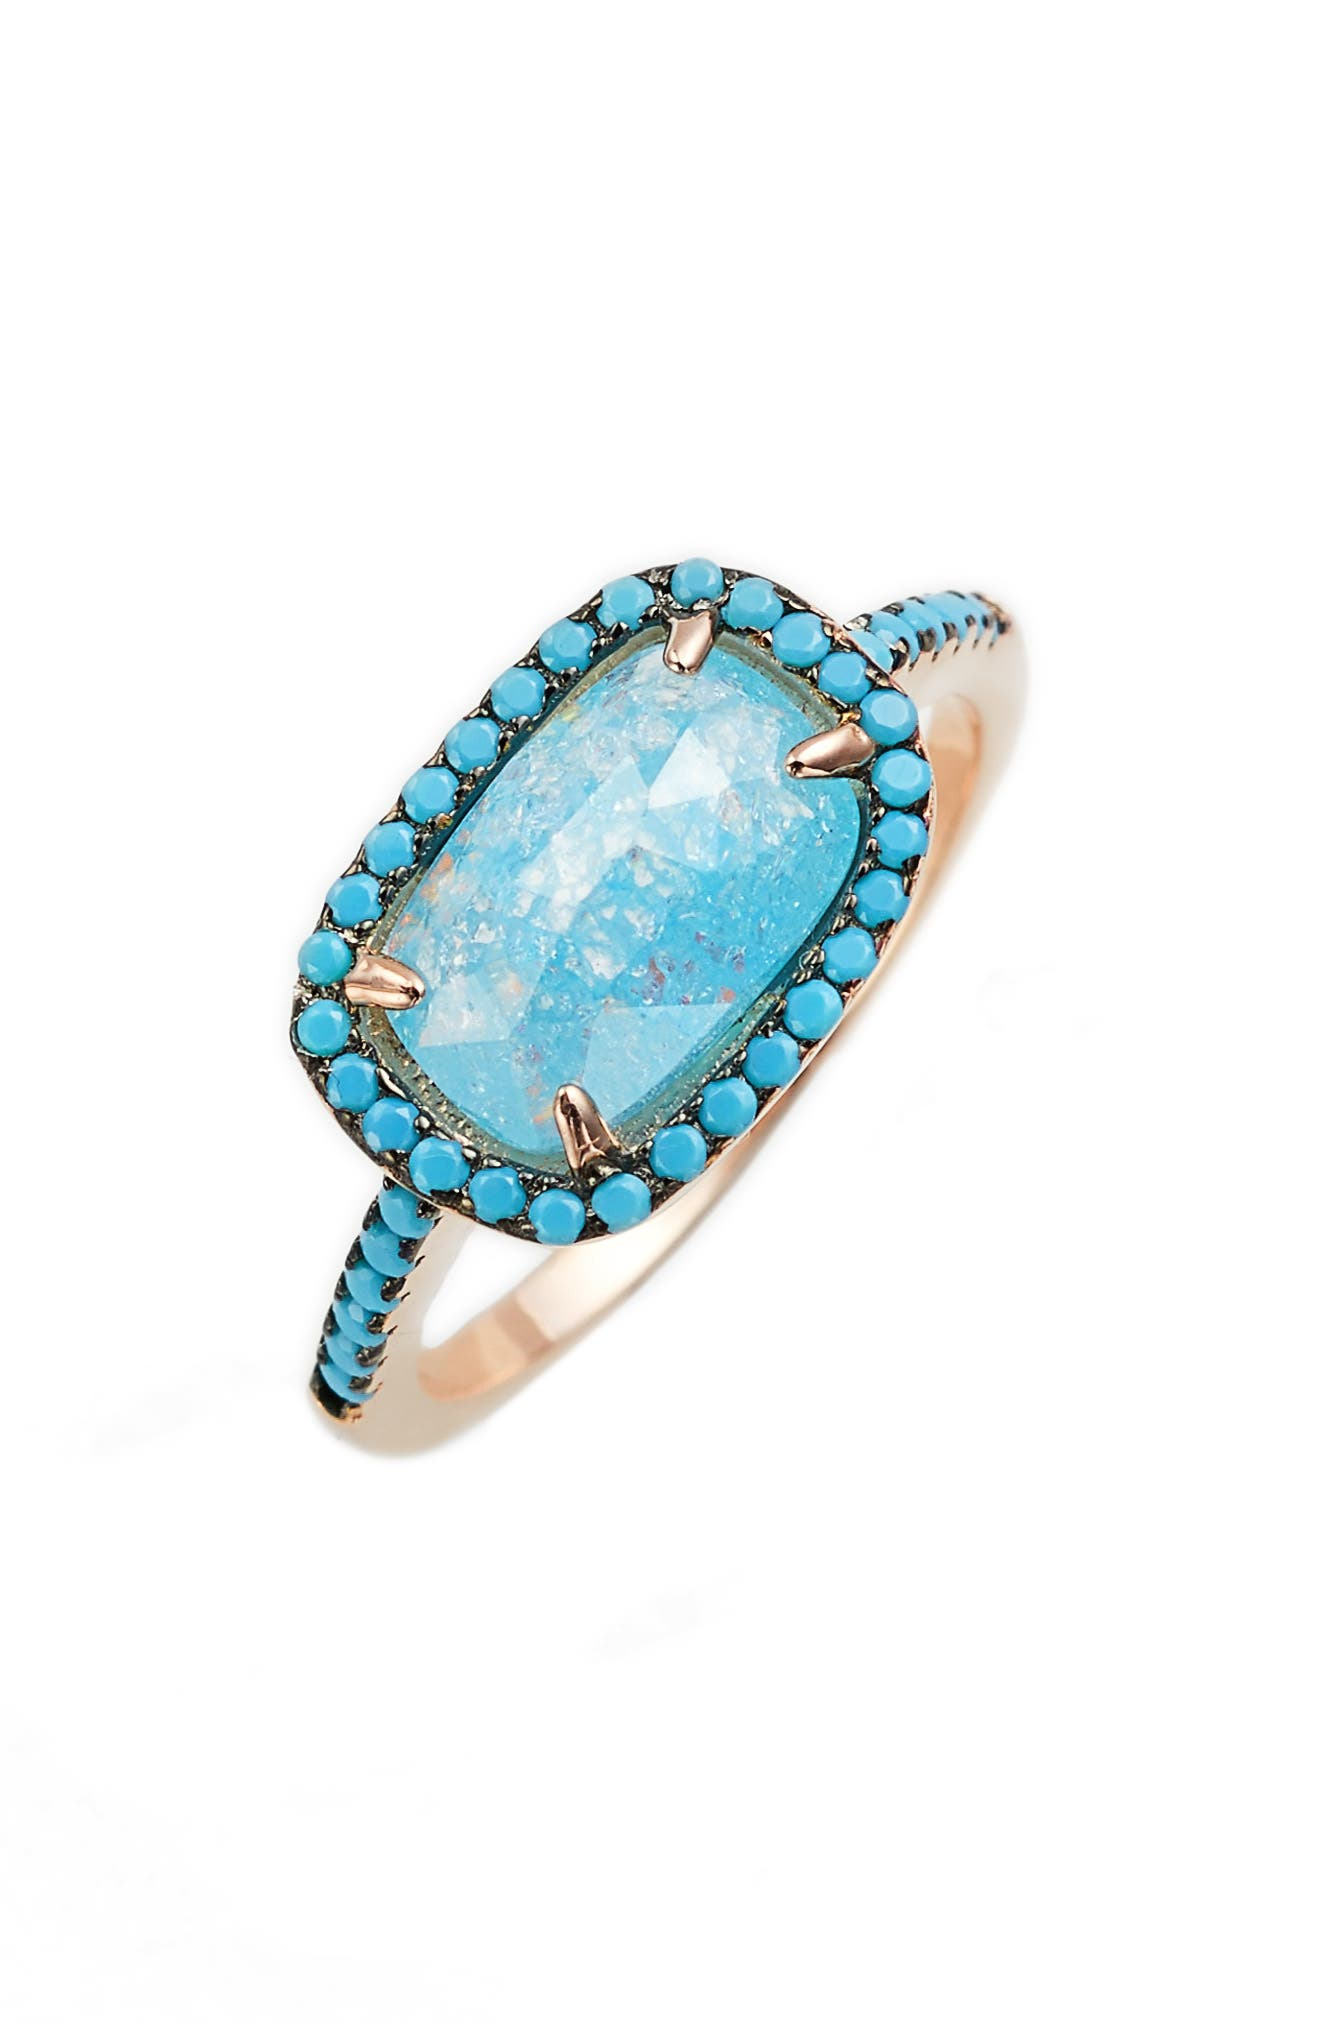 Crystal & Turquoise Ring,                             Main thumbnail 1, color,                             710